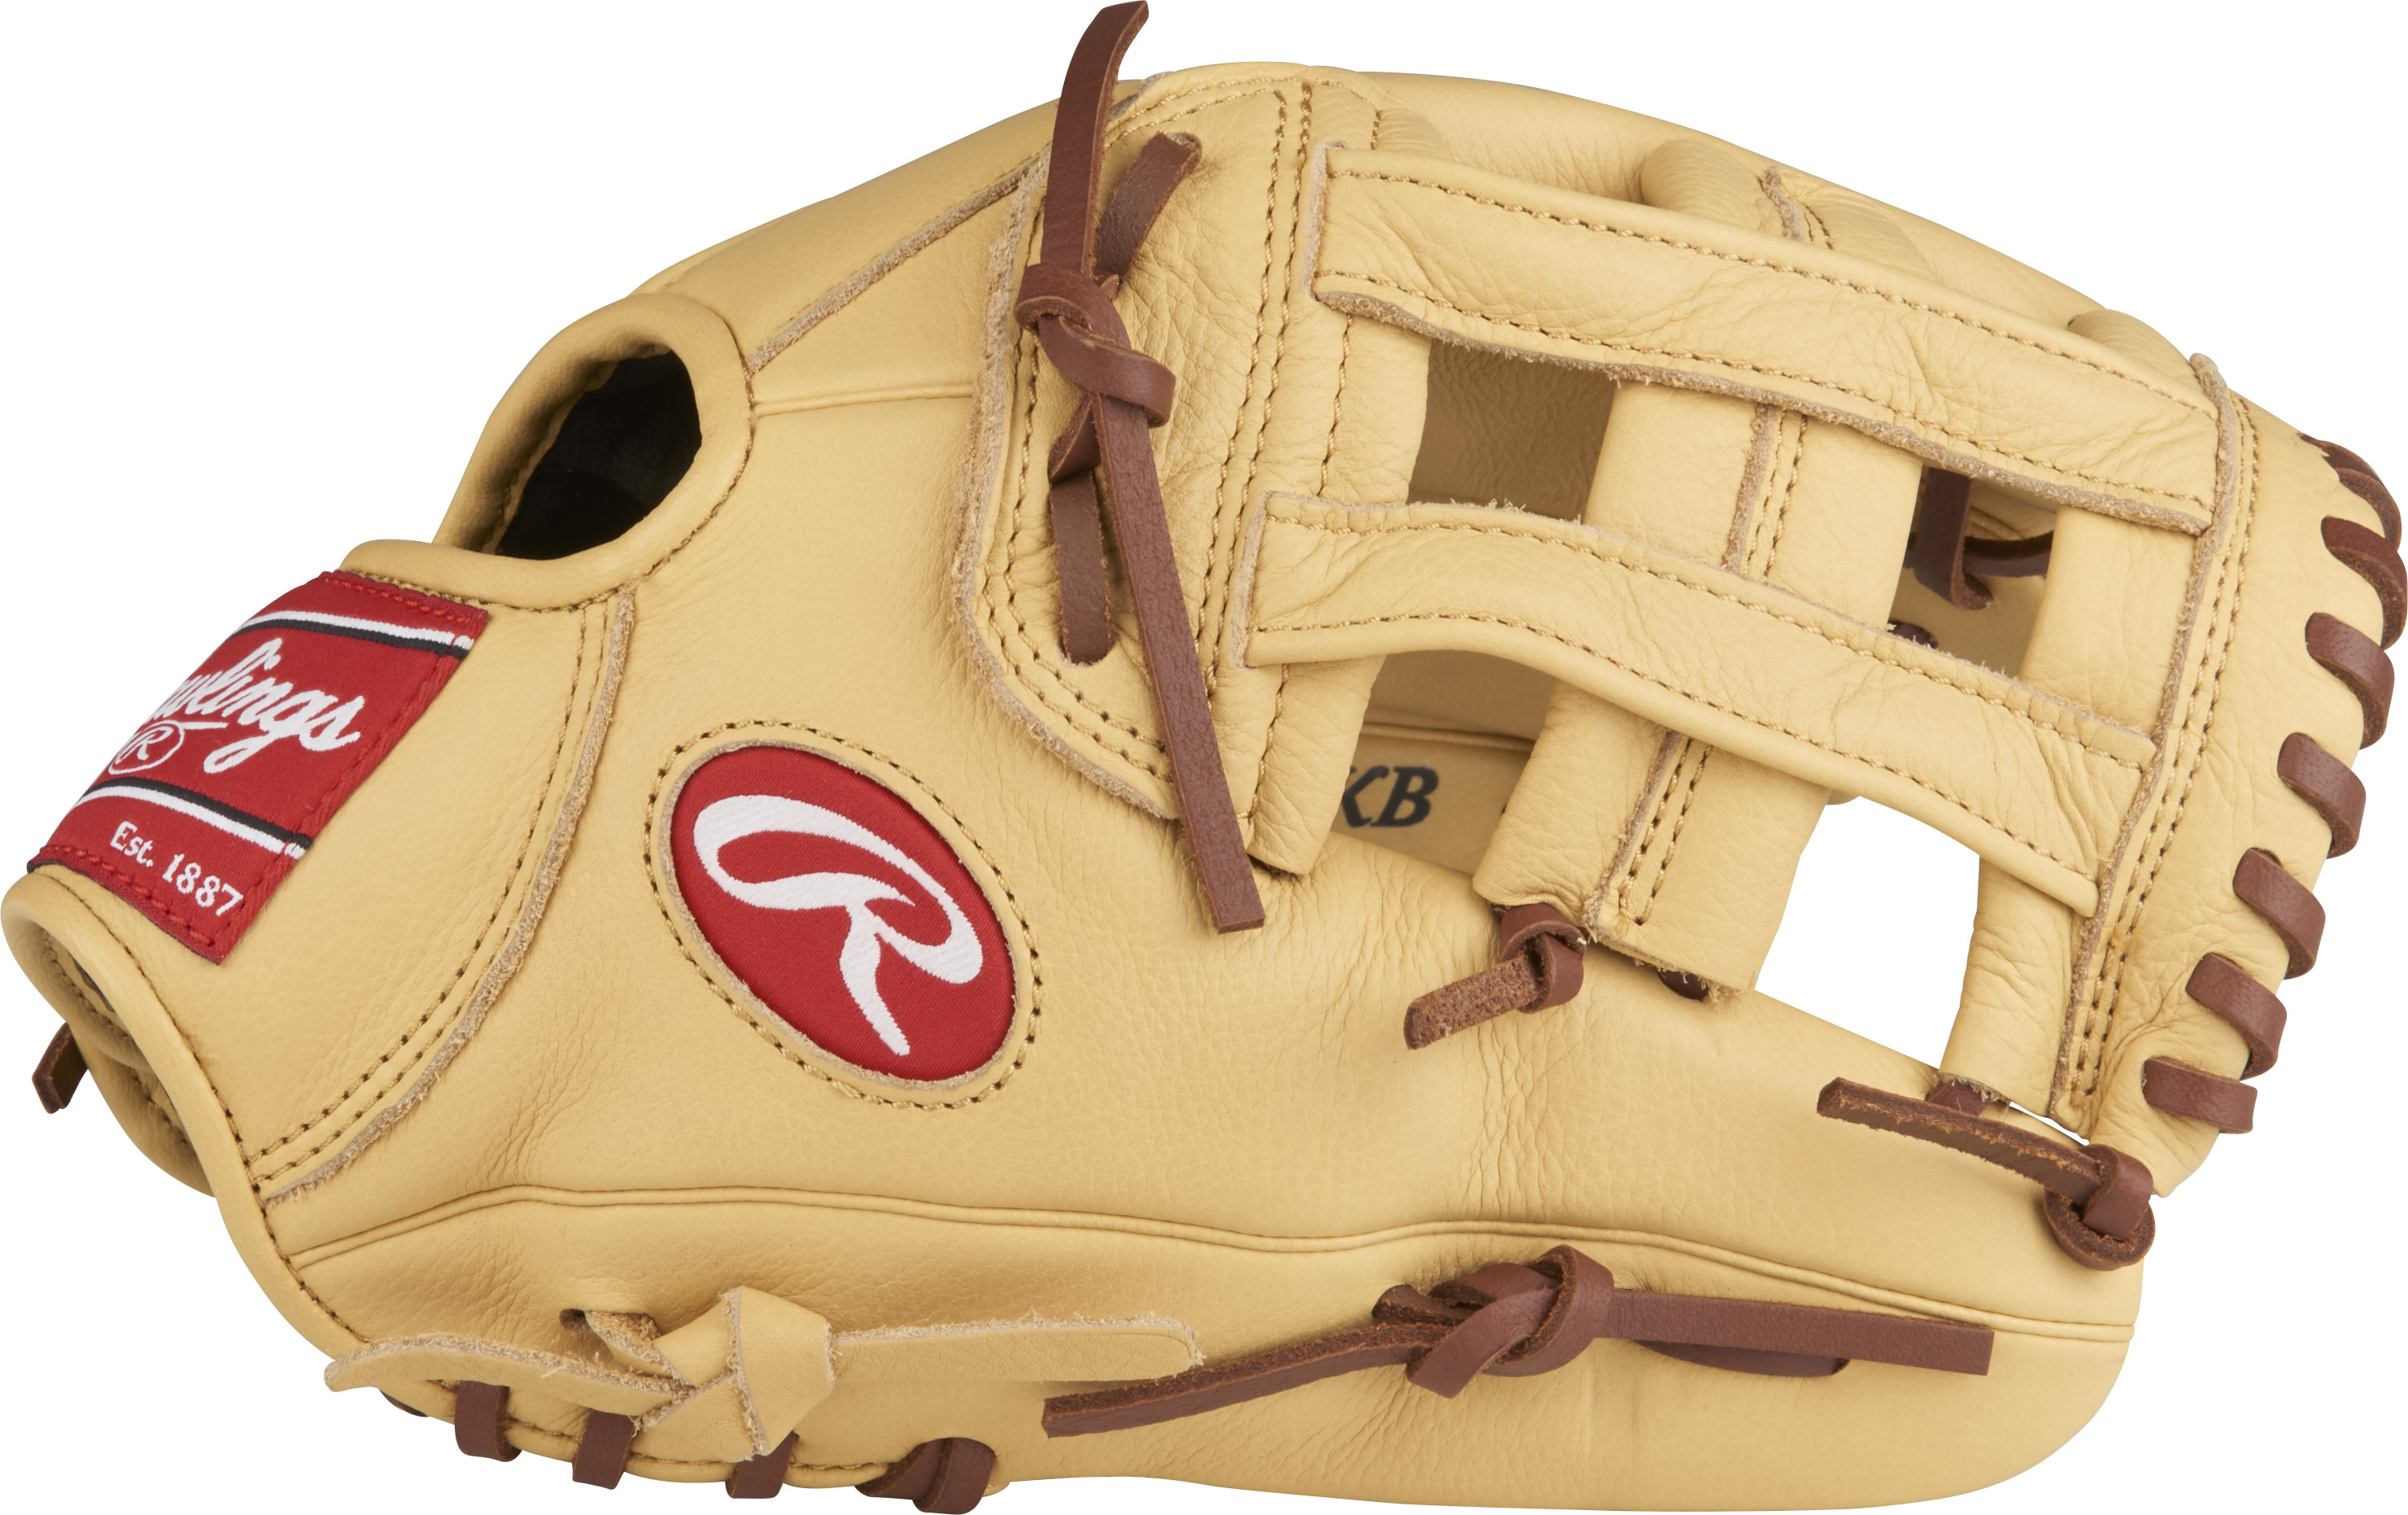 http://www.bestbatdeals.com/images/gloves/rawlings/SPL115KB-3.jpg